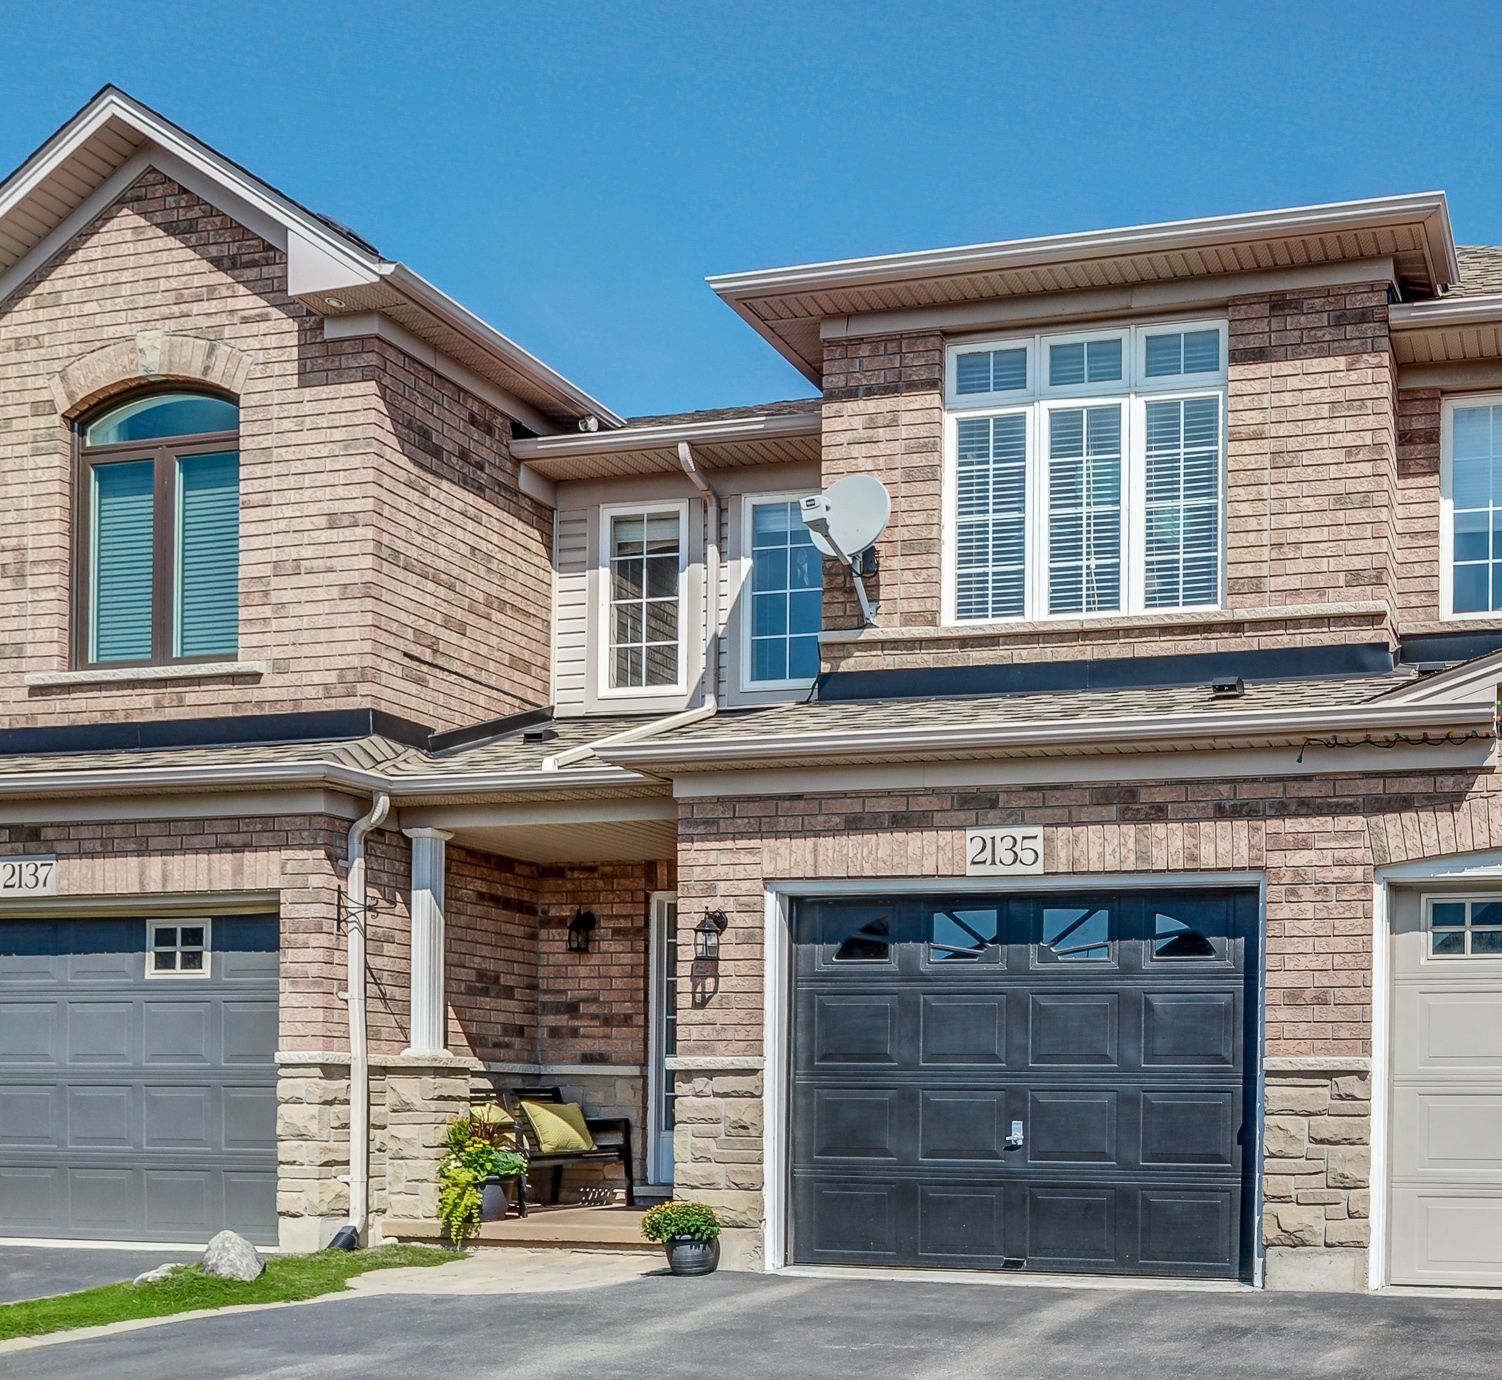 Main Photo: 2135 Redstone Crescent in Oakville: West Oak Trails House (2-Storey) for sale : MLS®# W4237112